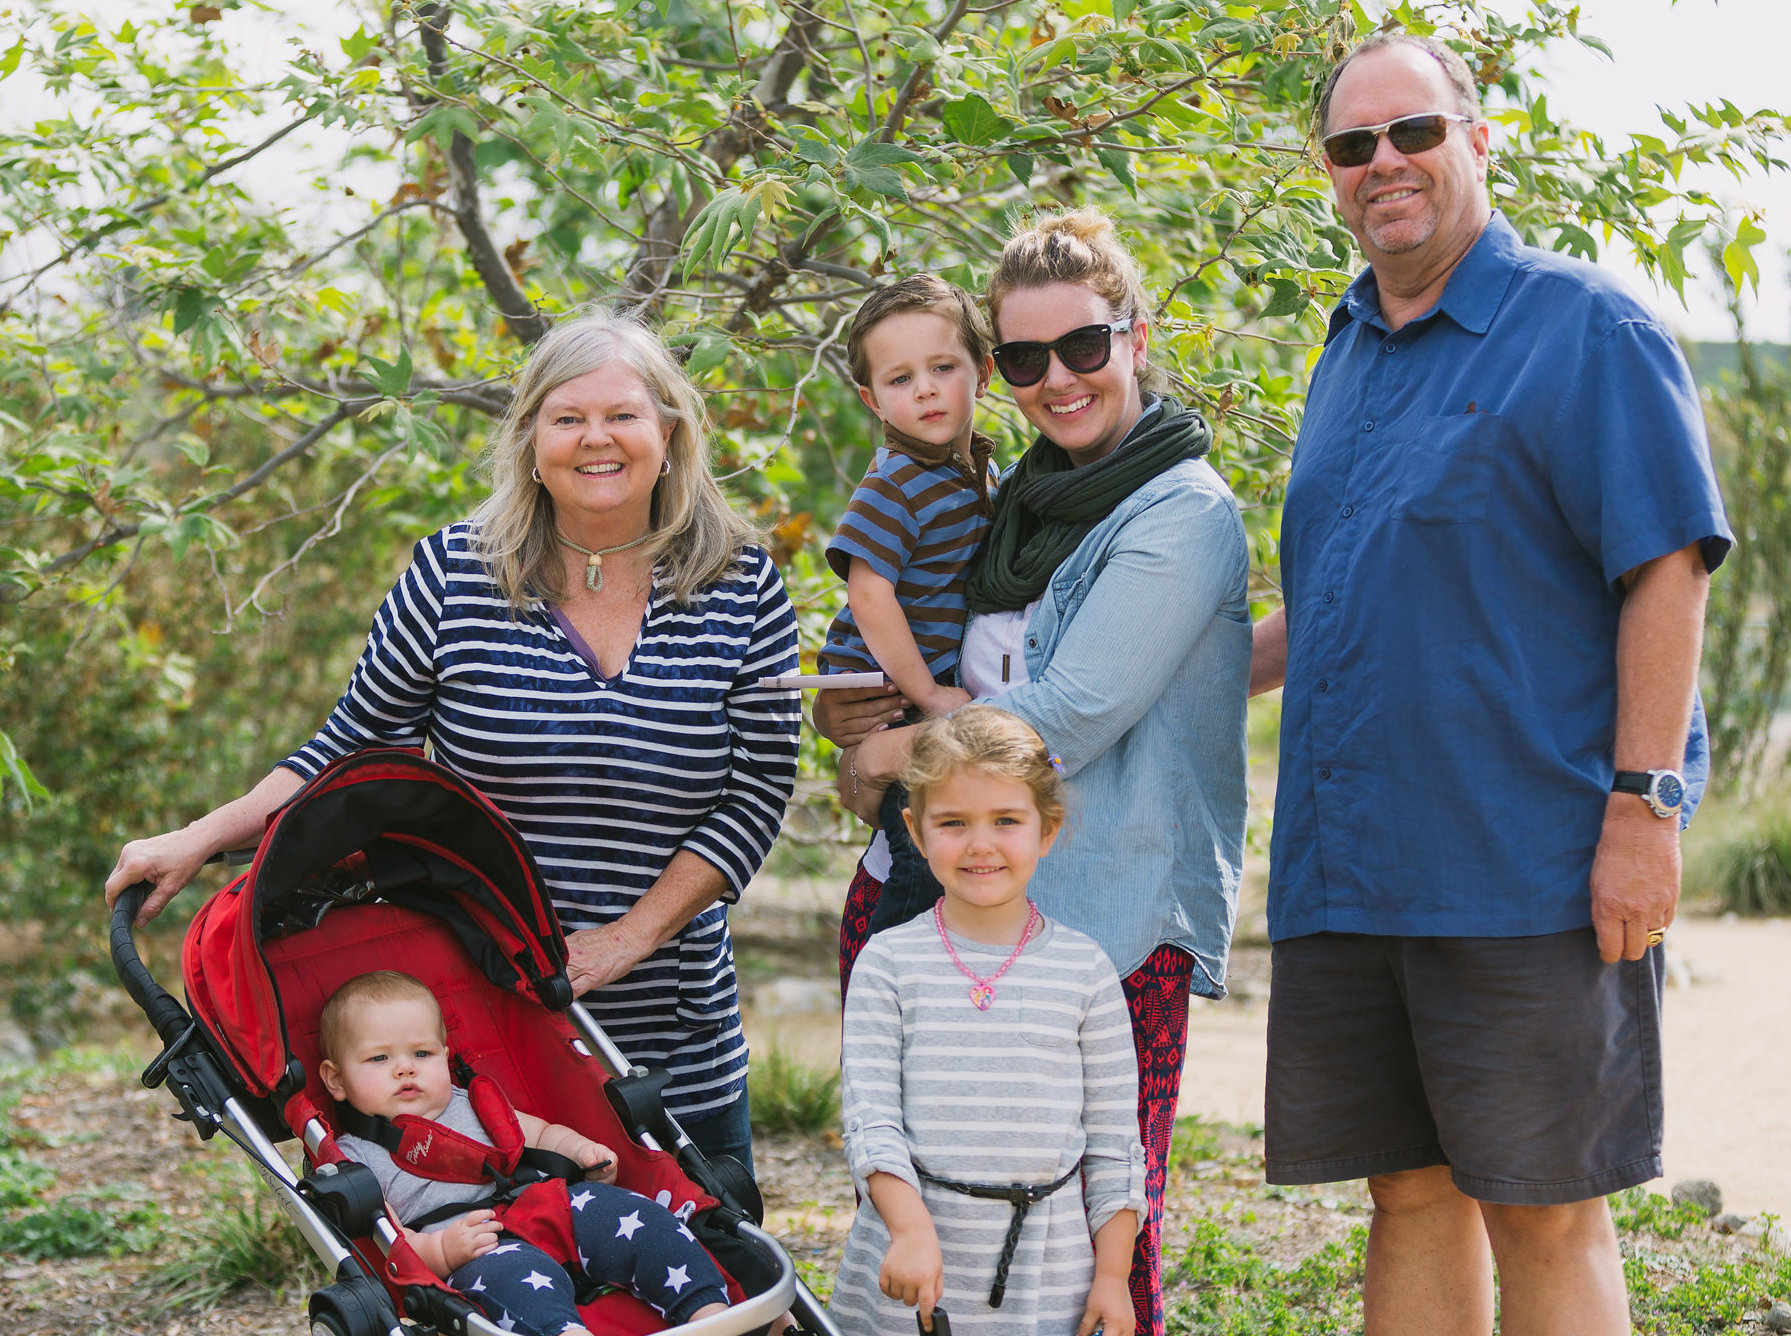 This family had a blast at the coastkeeper garden